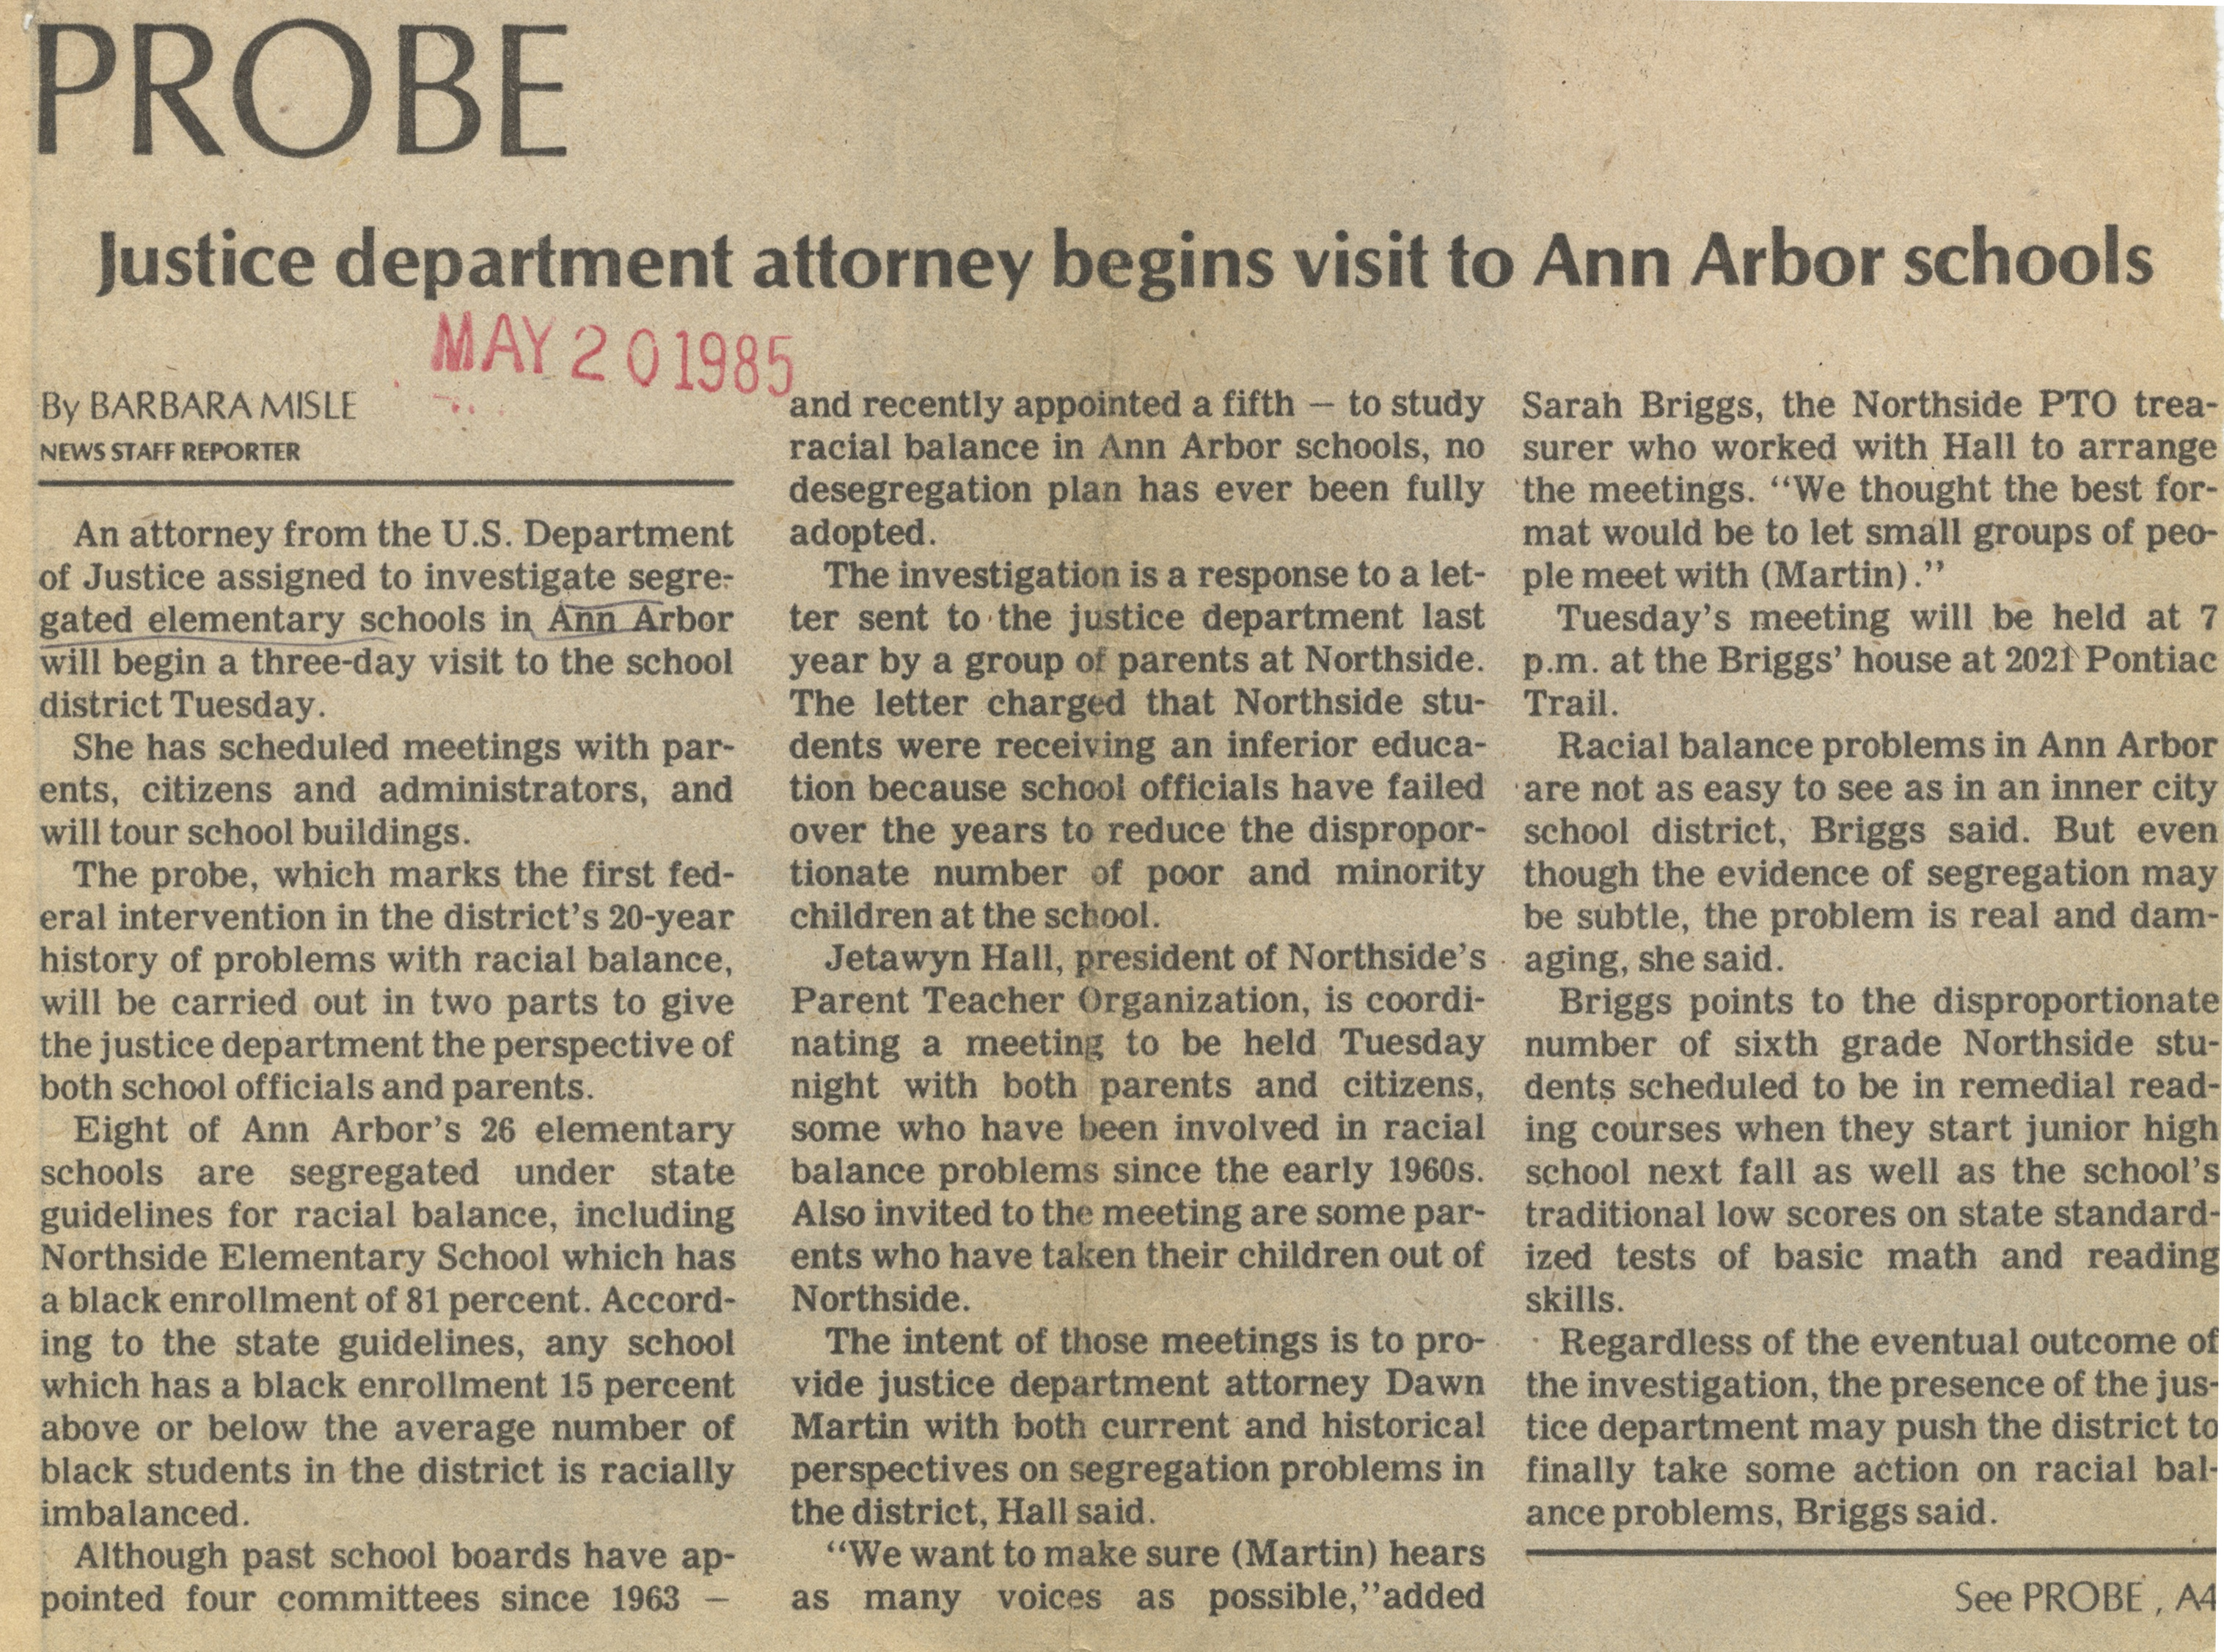 Probe: Justice Department Attorney Begins Visit To Ann Arbor Schools image